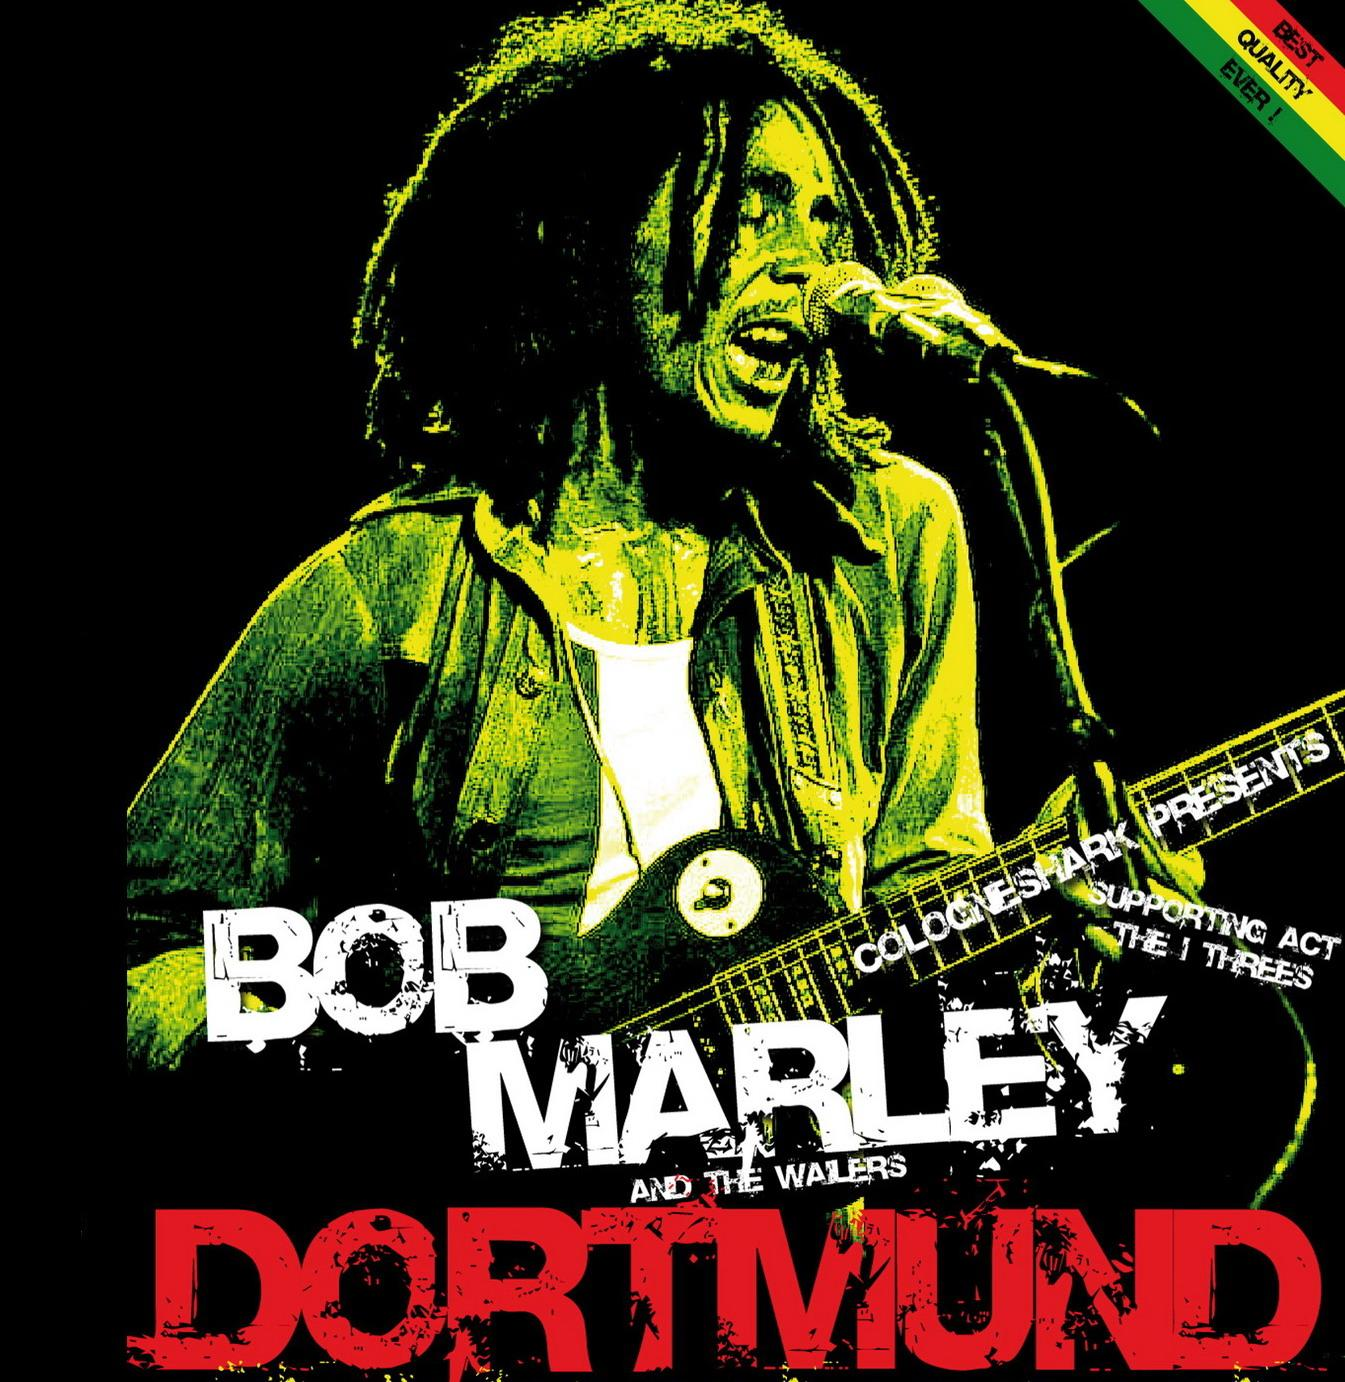 Bob Marley Cry Song Mp3 Download: CALA (-) LAND: Un Bootleg Al Giorno